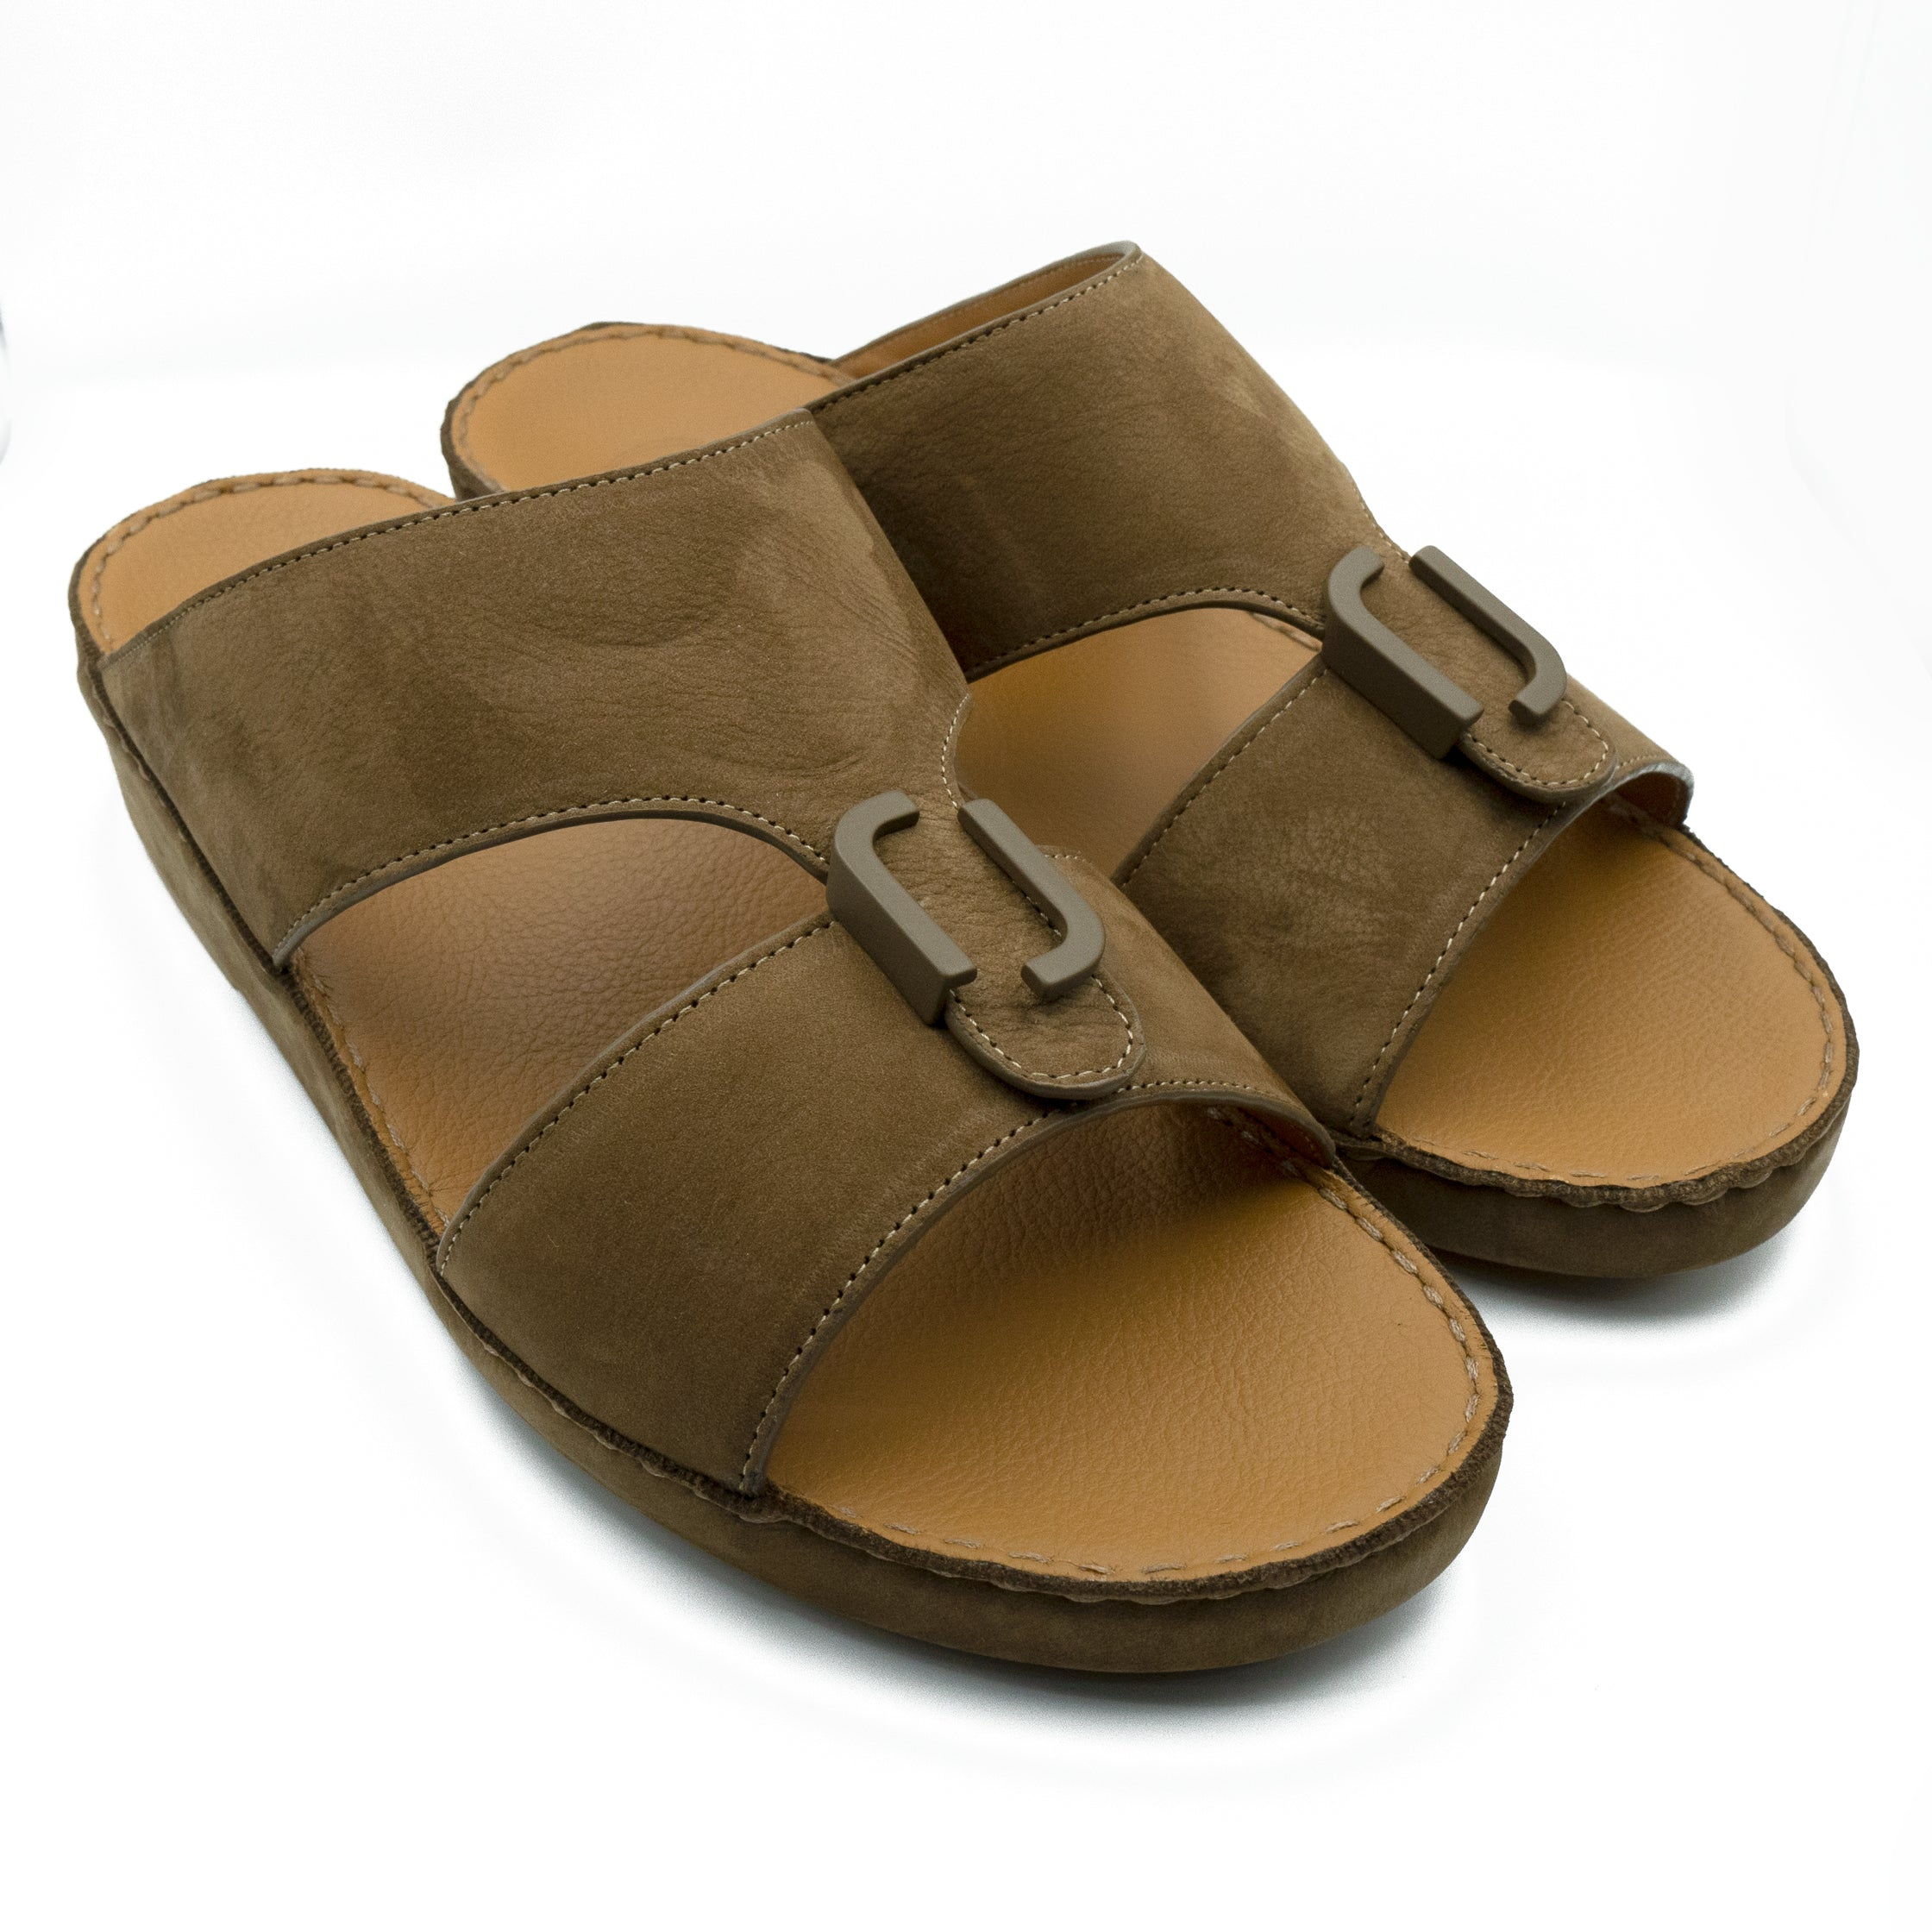 Café, Suede, Classic, Arabic, Flat, Sandals, Ramadan Collection, Arabic, Sandals, Accessories